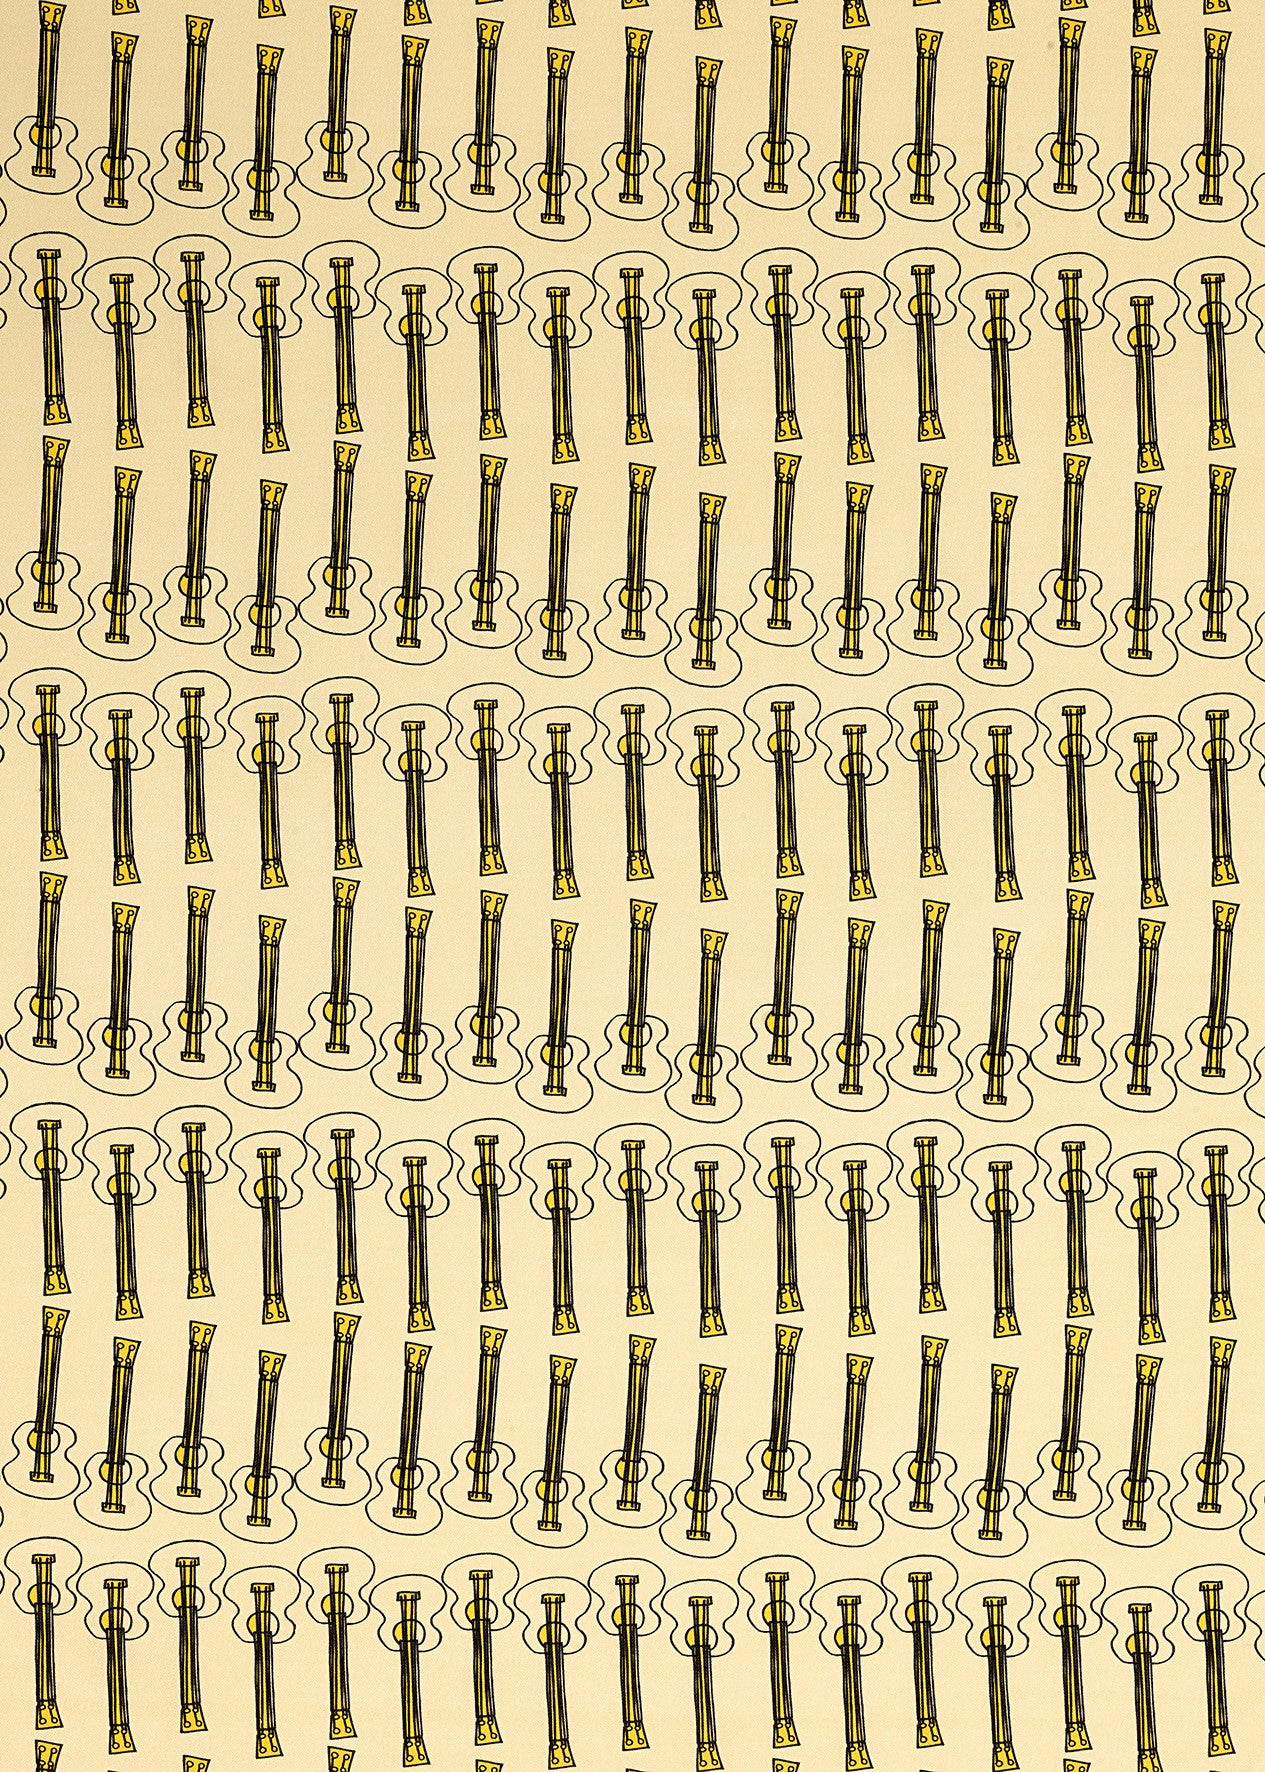 Ukelele Guitar Pattern Cotton Linen Home Decor Interiors Fabric by the Meter or yard in Pale Straw Yellow for curtains, blinds or upholstery ships from Canada (USA)